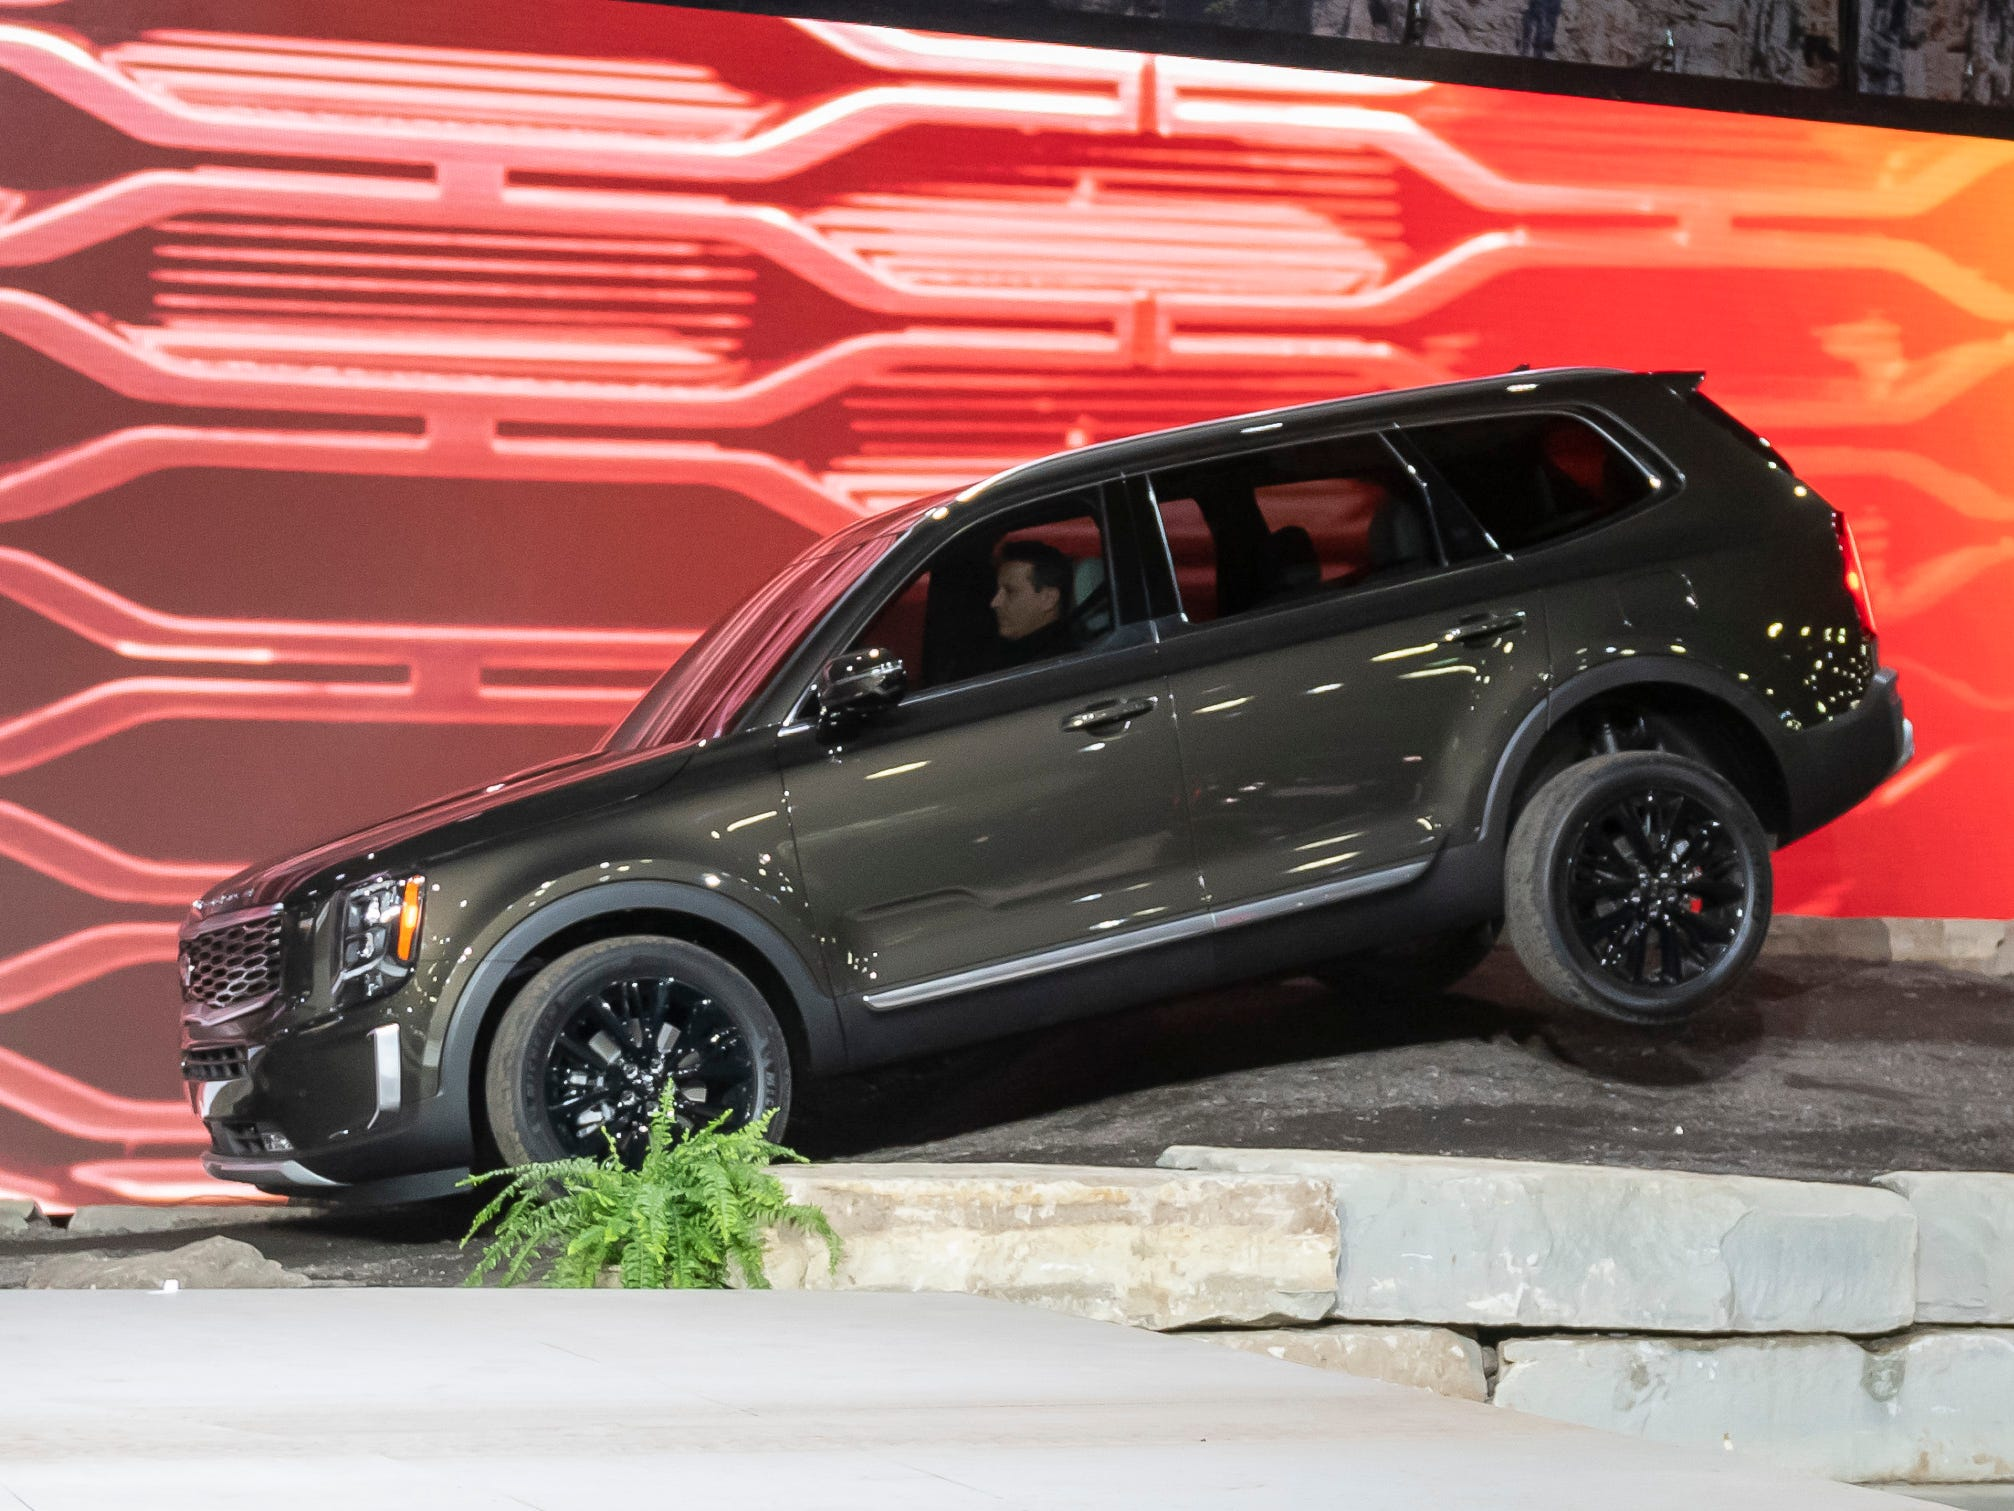 The 2020 Kia Telluride is driven on an off-road road course during its reveal at the North American International Auto Show at Cobo Center in Detroit, Jan. 14, 2019.